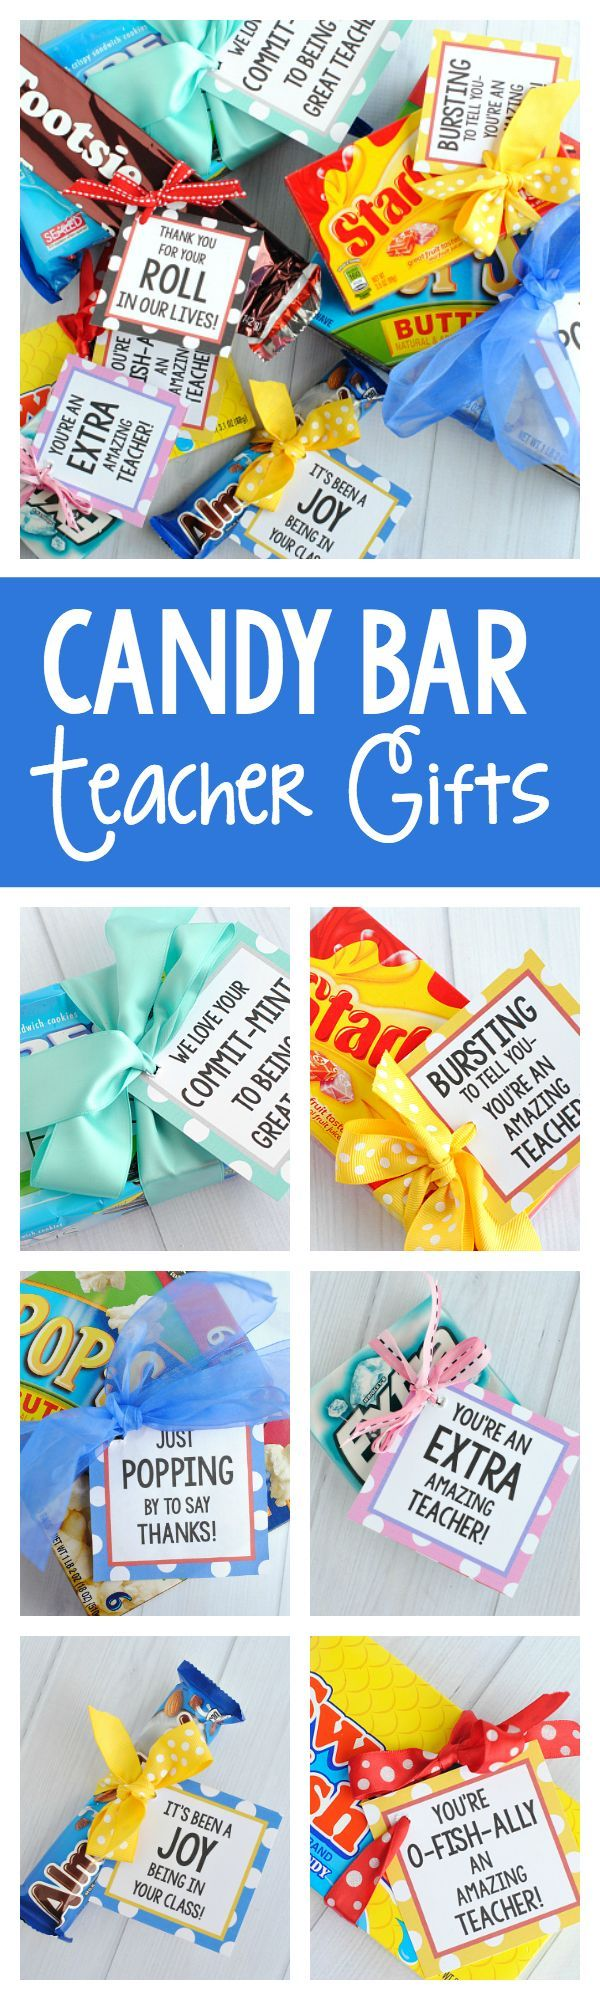 25+ best ideas about Candy bar gifts on Pinterest